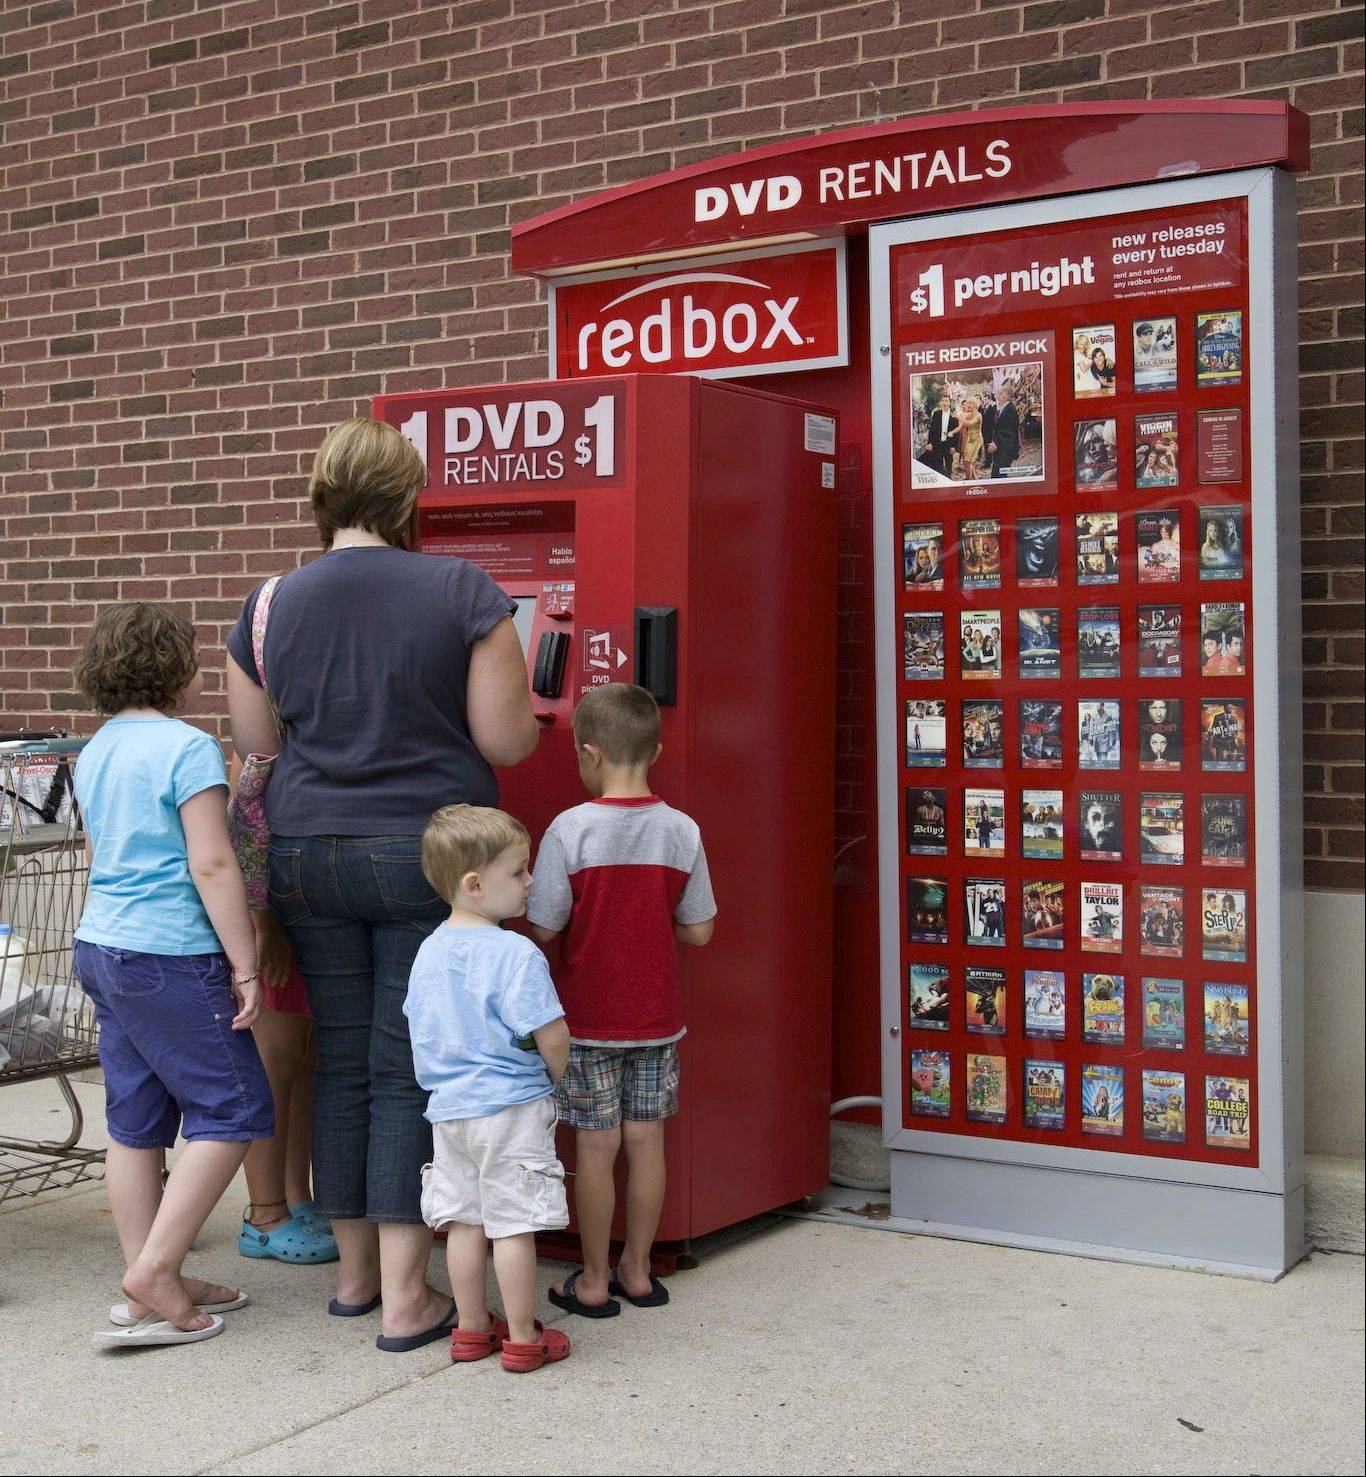 DVD kiosk operator Redbox is launching a challenge to Netflix's streaming-video supremacy. Later this month, Redbox will offer an unlimited streaming-video plan that includes movies from Warner Bros. and pay TV channel Epix, along with four nights of physical DVD rentals, for $8 a month, or $9 a month if customers want Blu-ray discs.